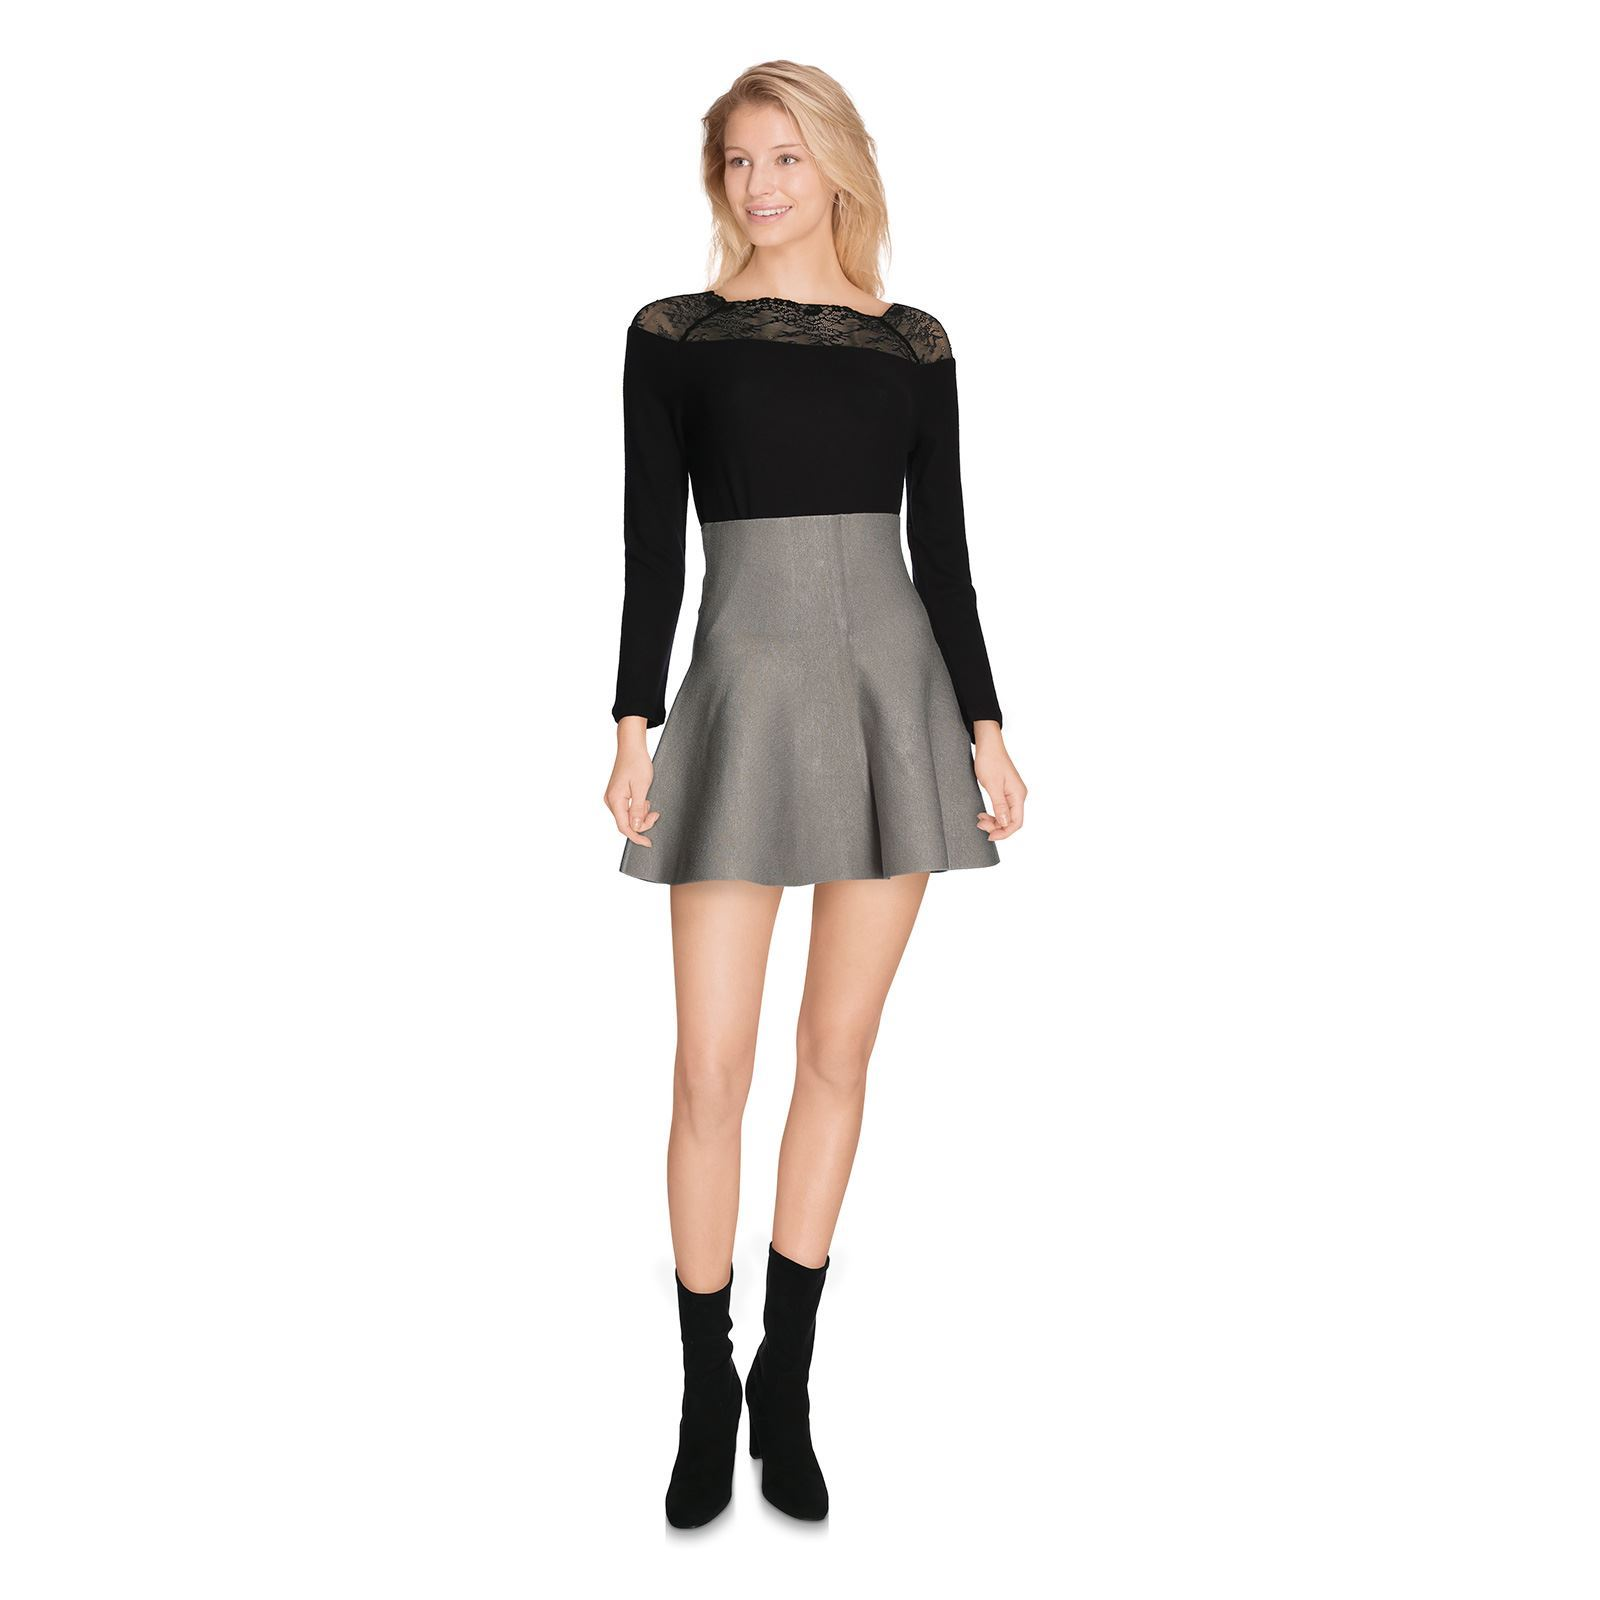 CircusJupe Maille May Femme En Gris Noisy V DH2IWEe9Y